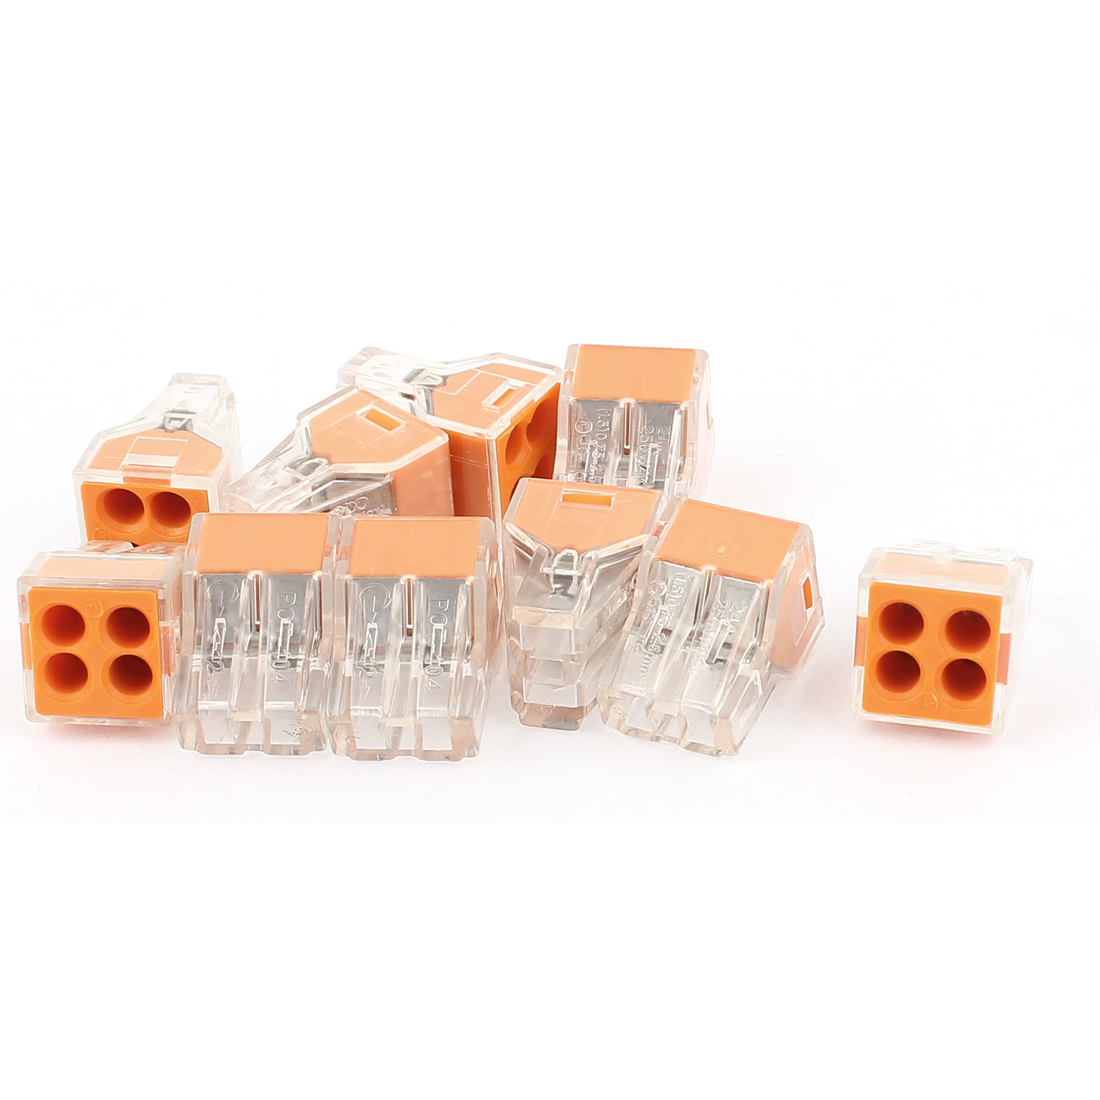 10Pcs PCE-104 4 Port Orange Push-in Wire Connector for 0.75-2.5mm2 Wire